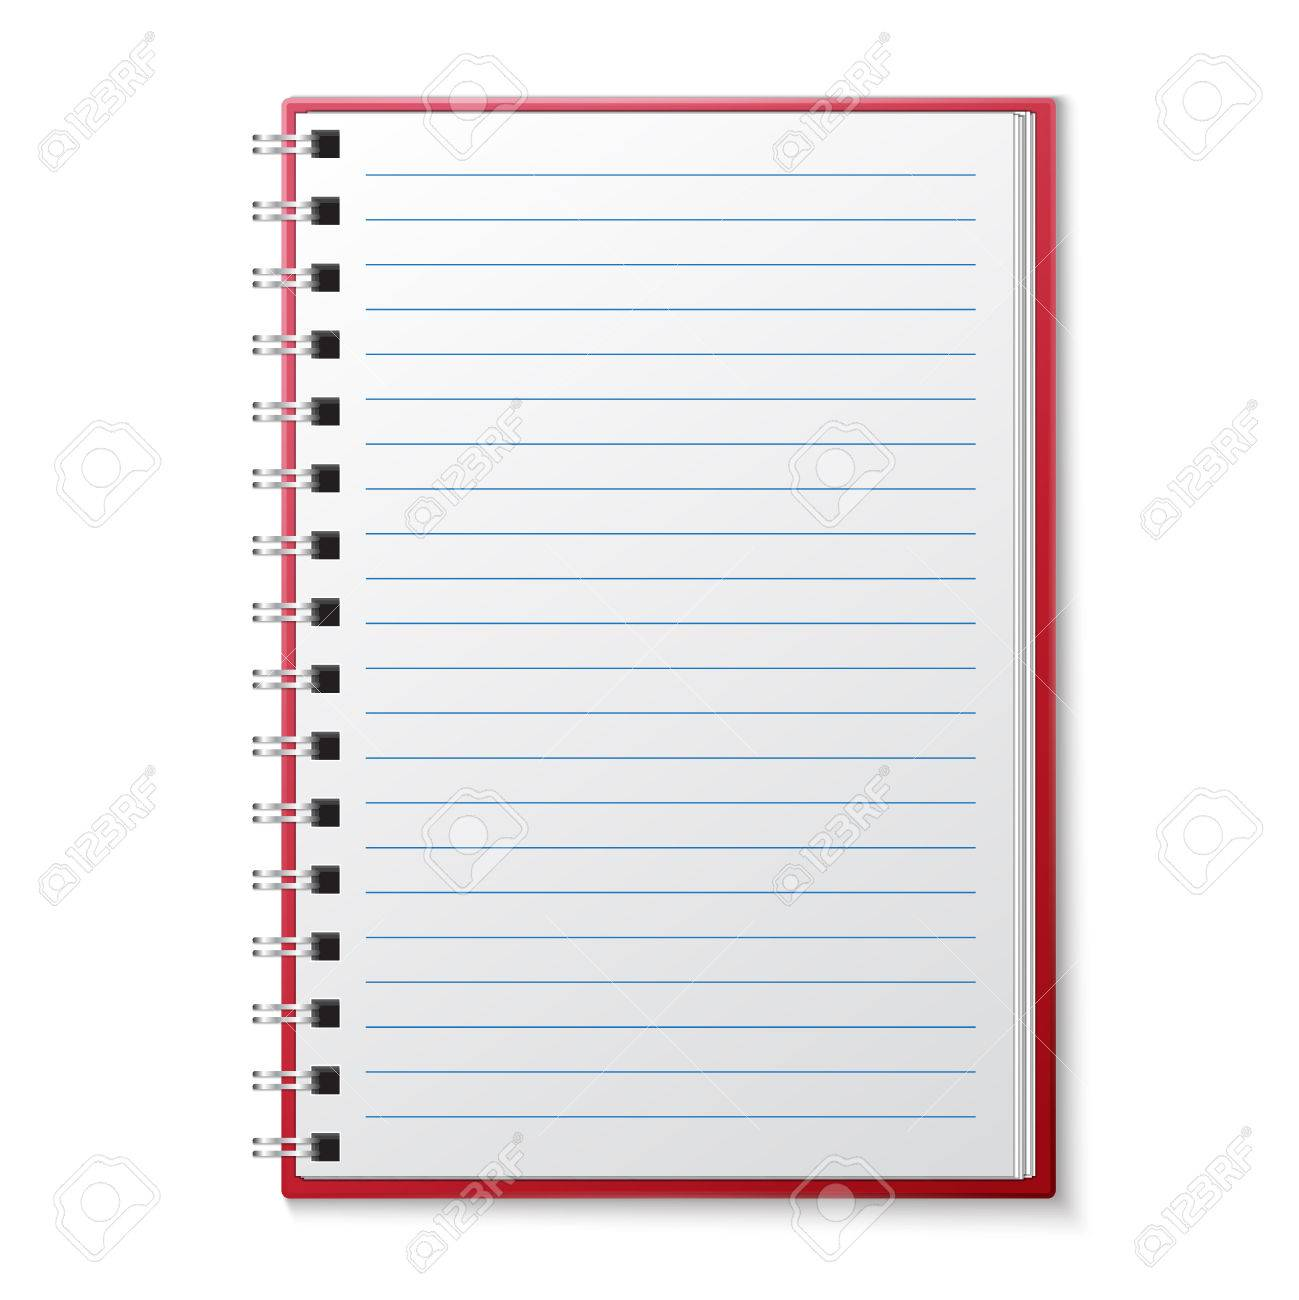 Open Blank Lined Page Notebook Royalty Free Cliparts, Vectors, And ...